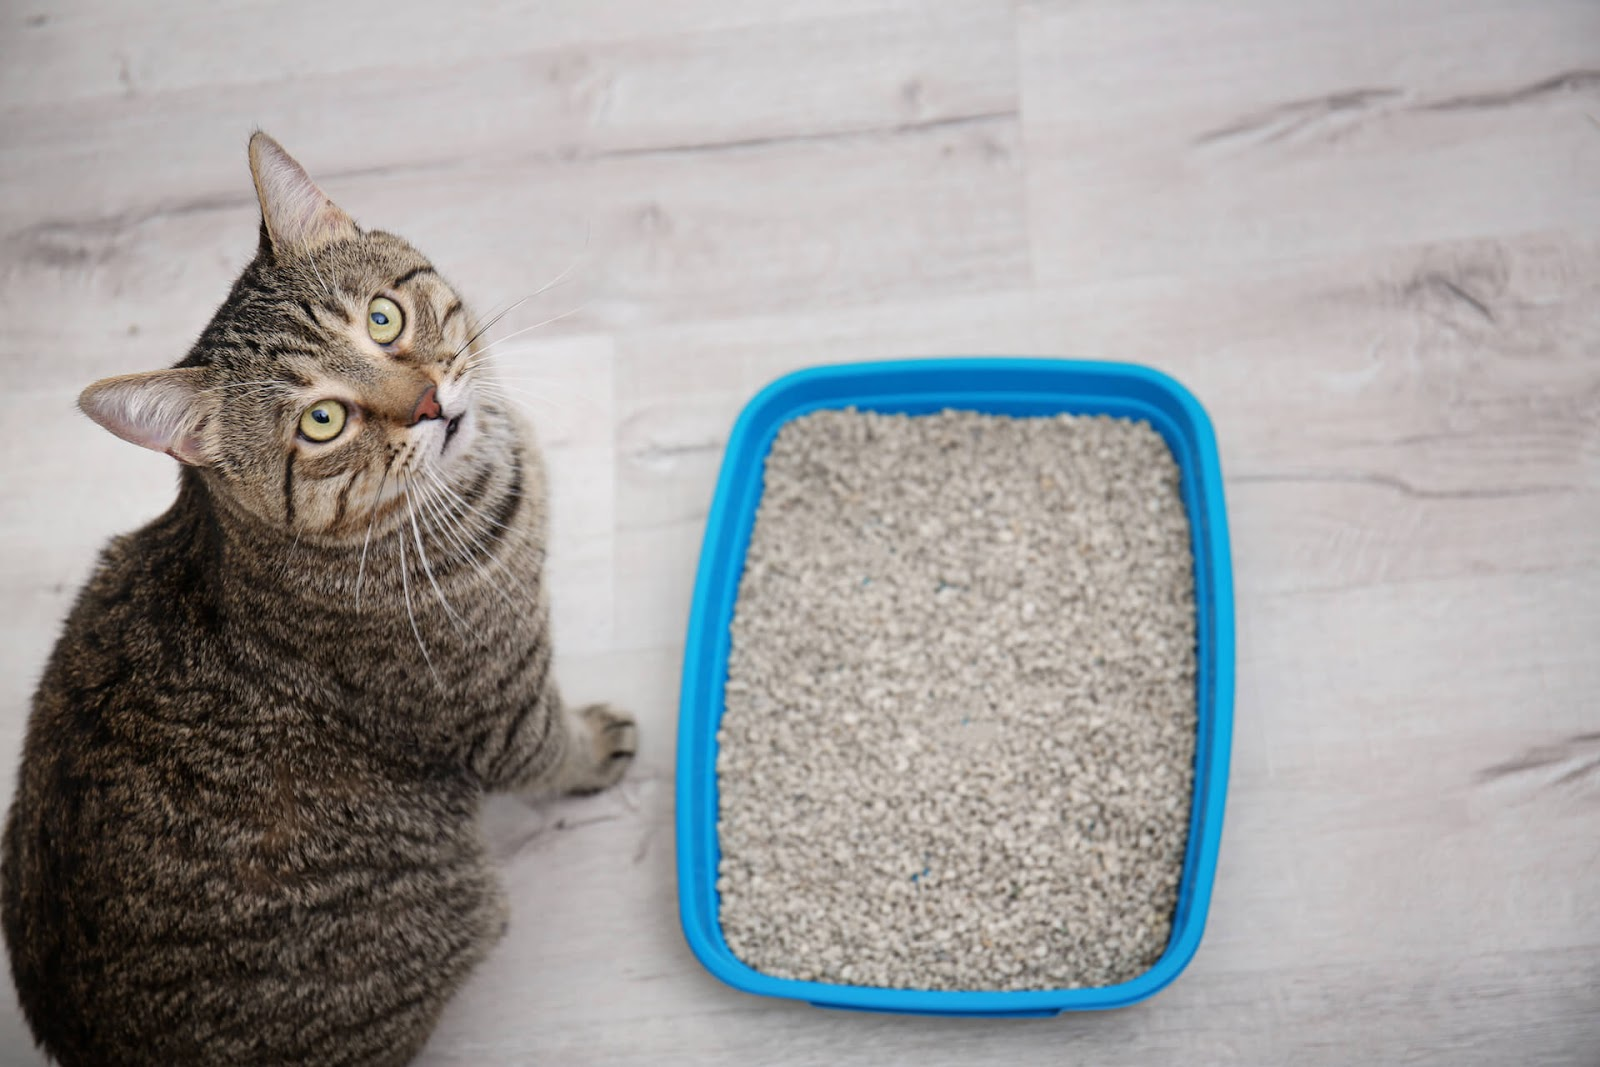 Cat looking at the camera next to a clean litter box